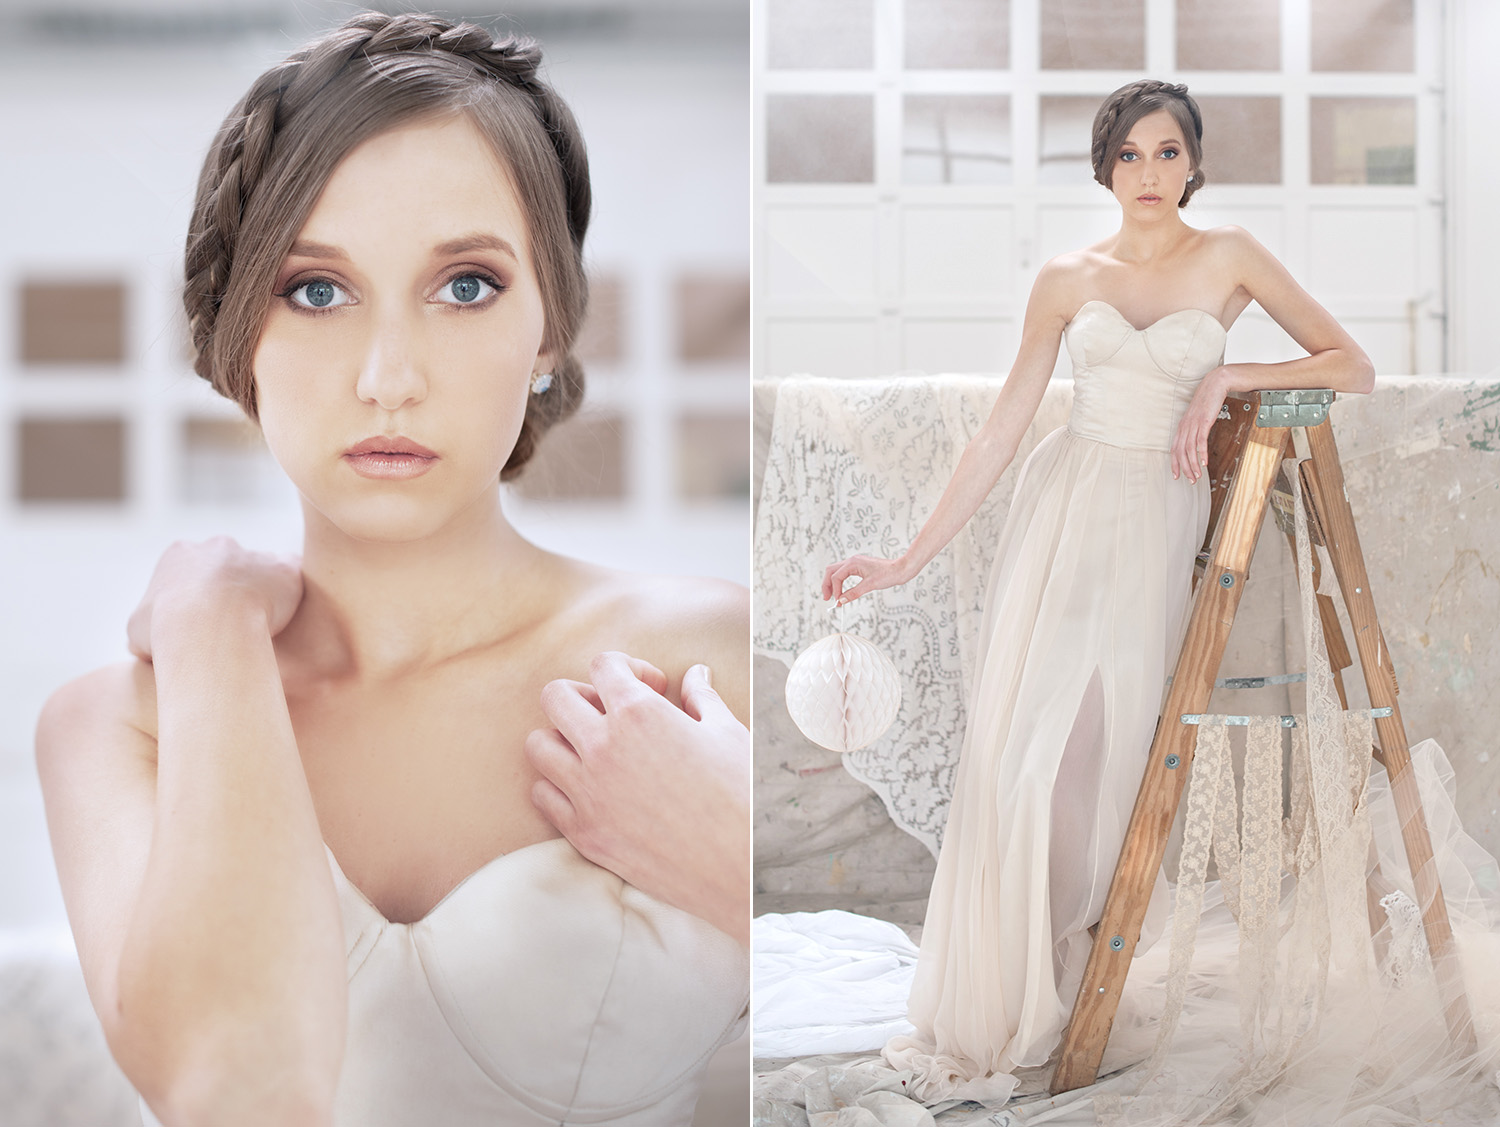 6-bridal-fashion-editorial-christa-taylor-photography.jpg